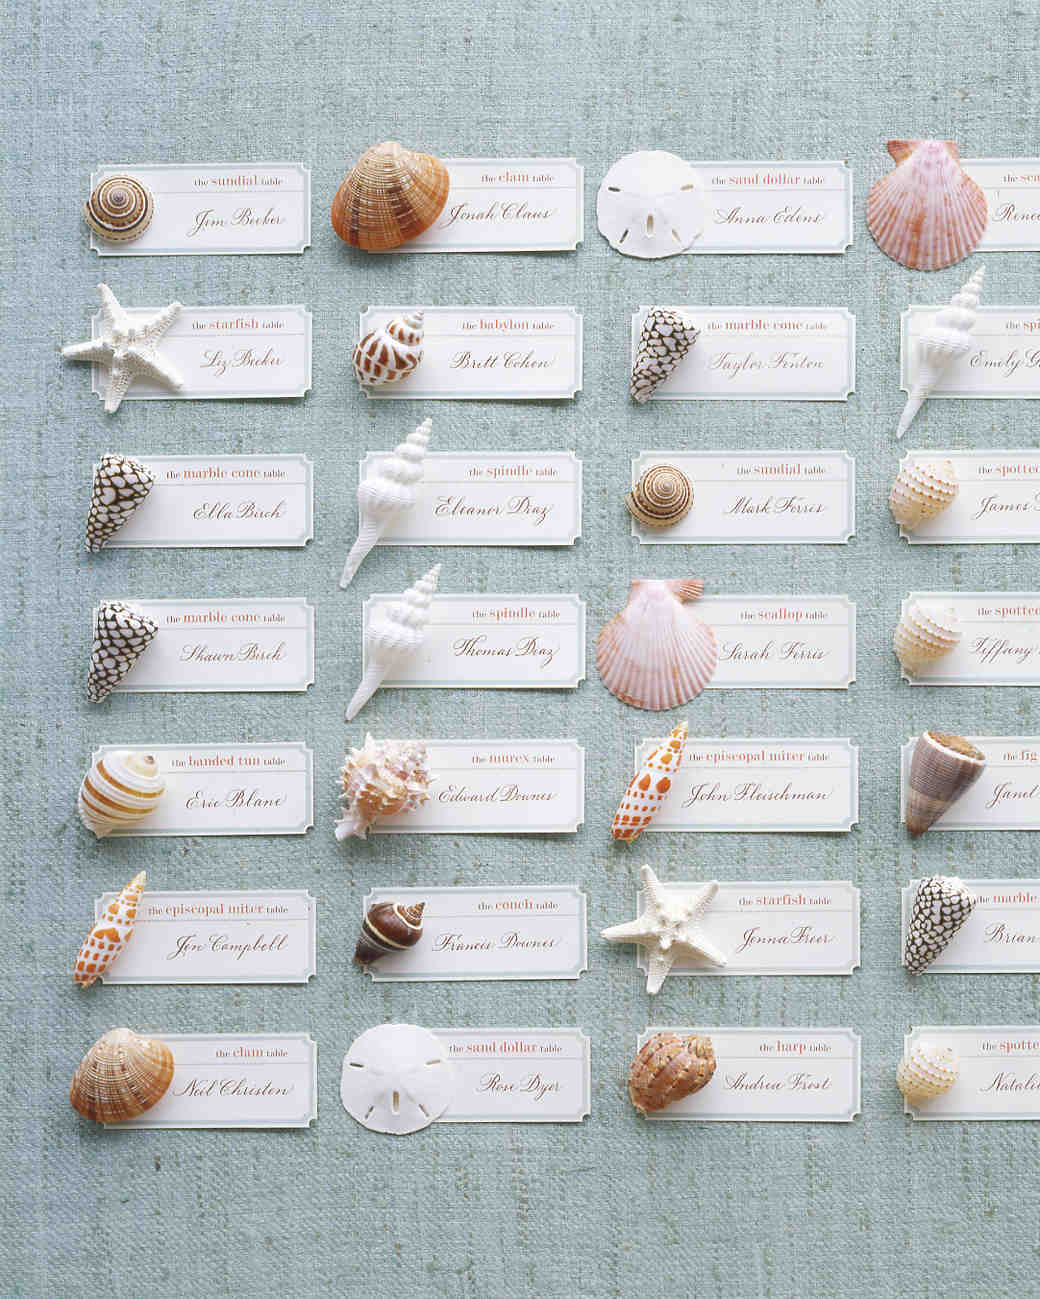 Beach Wedding Decorations Ideas: Escort Card Ideas For A Beach Wedding